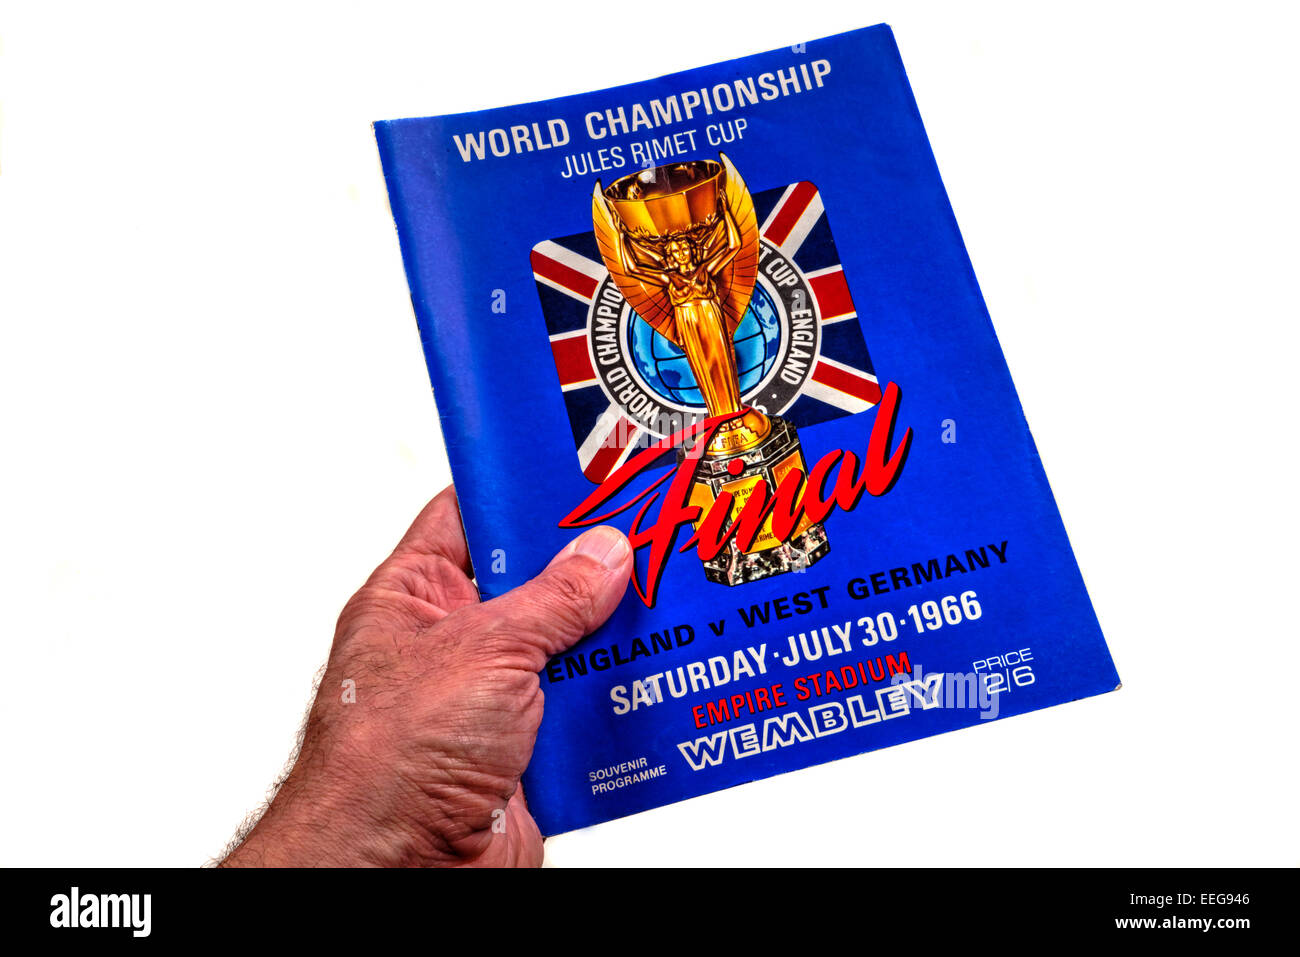 Hand holding a World Cup Final 1966 England v West Germany program (programme) - Stock Image